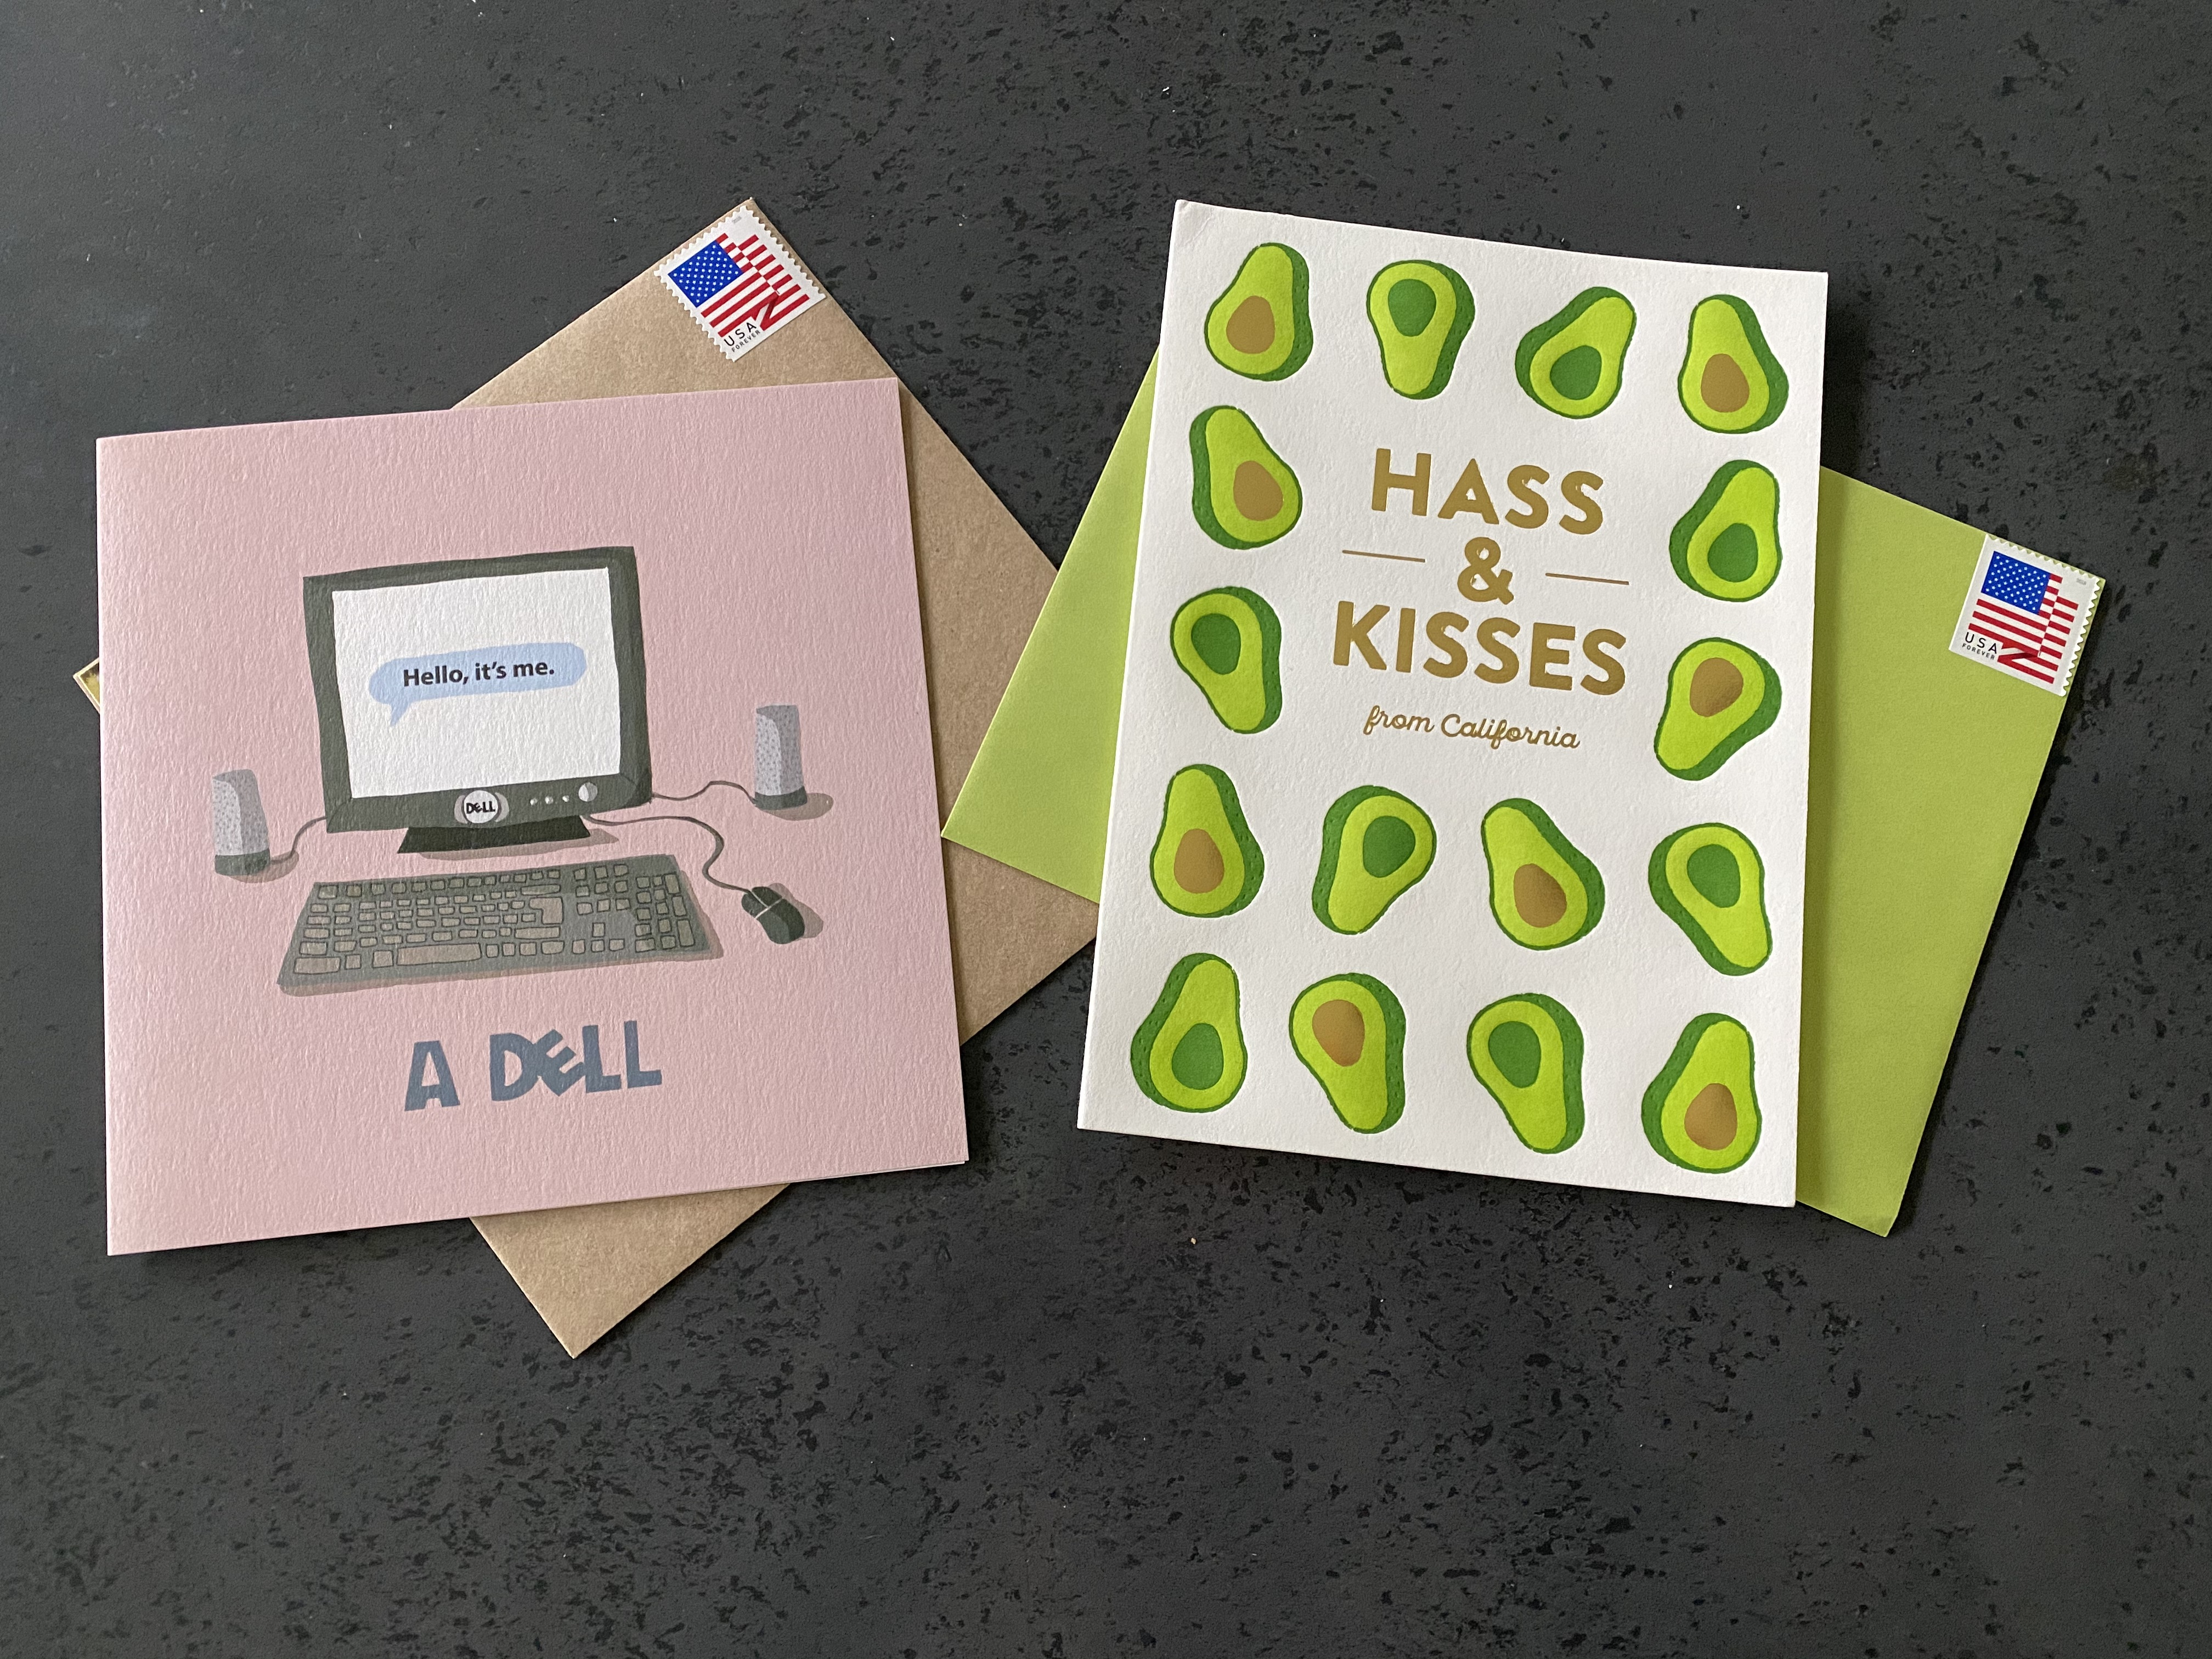 "A photo of two funny punny greeting cards. One designed by Ohh Deer says, ""Hello, It's me. A dell."" Another card by Elum Designs says, ""Hass & Kisses From California."" Photo Courtesy of FoodWaterShoes"